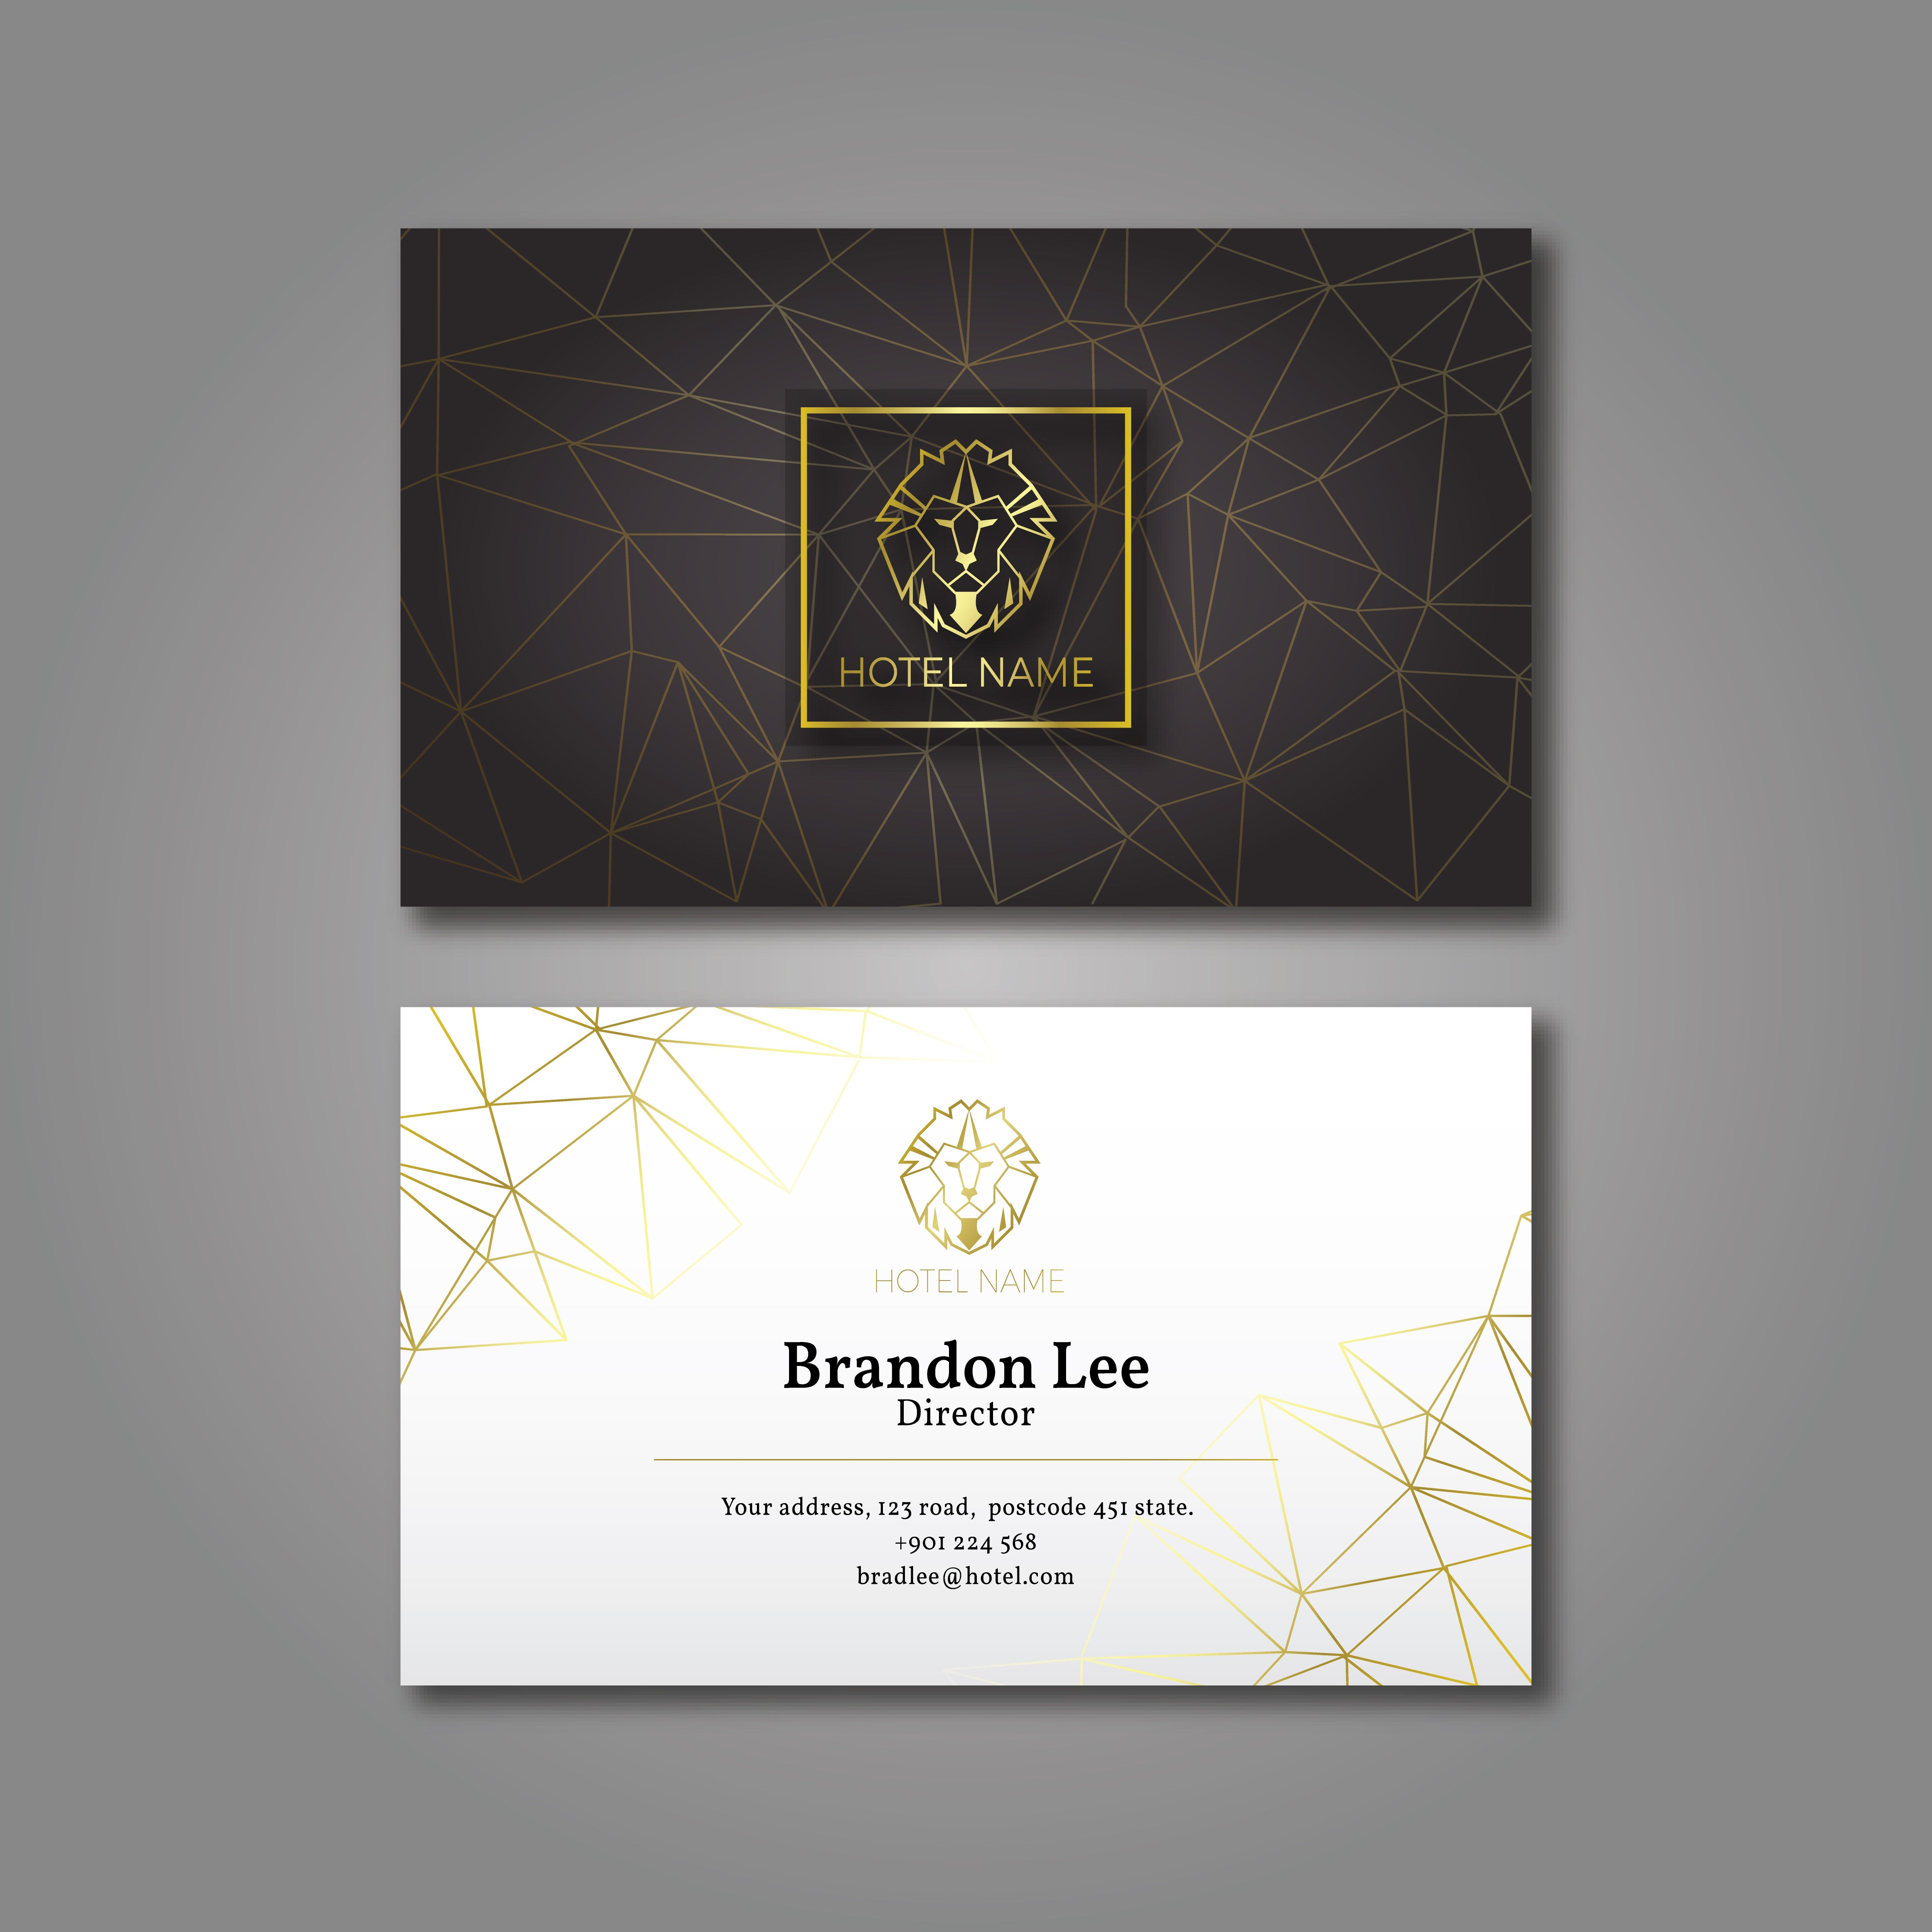 Hire Me For Making A Business Card Like This Design Business Card Ideas Graphic Design Business Card Business Card Layout Design